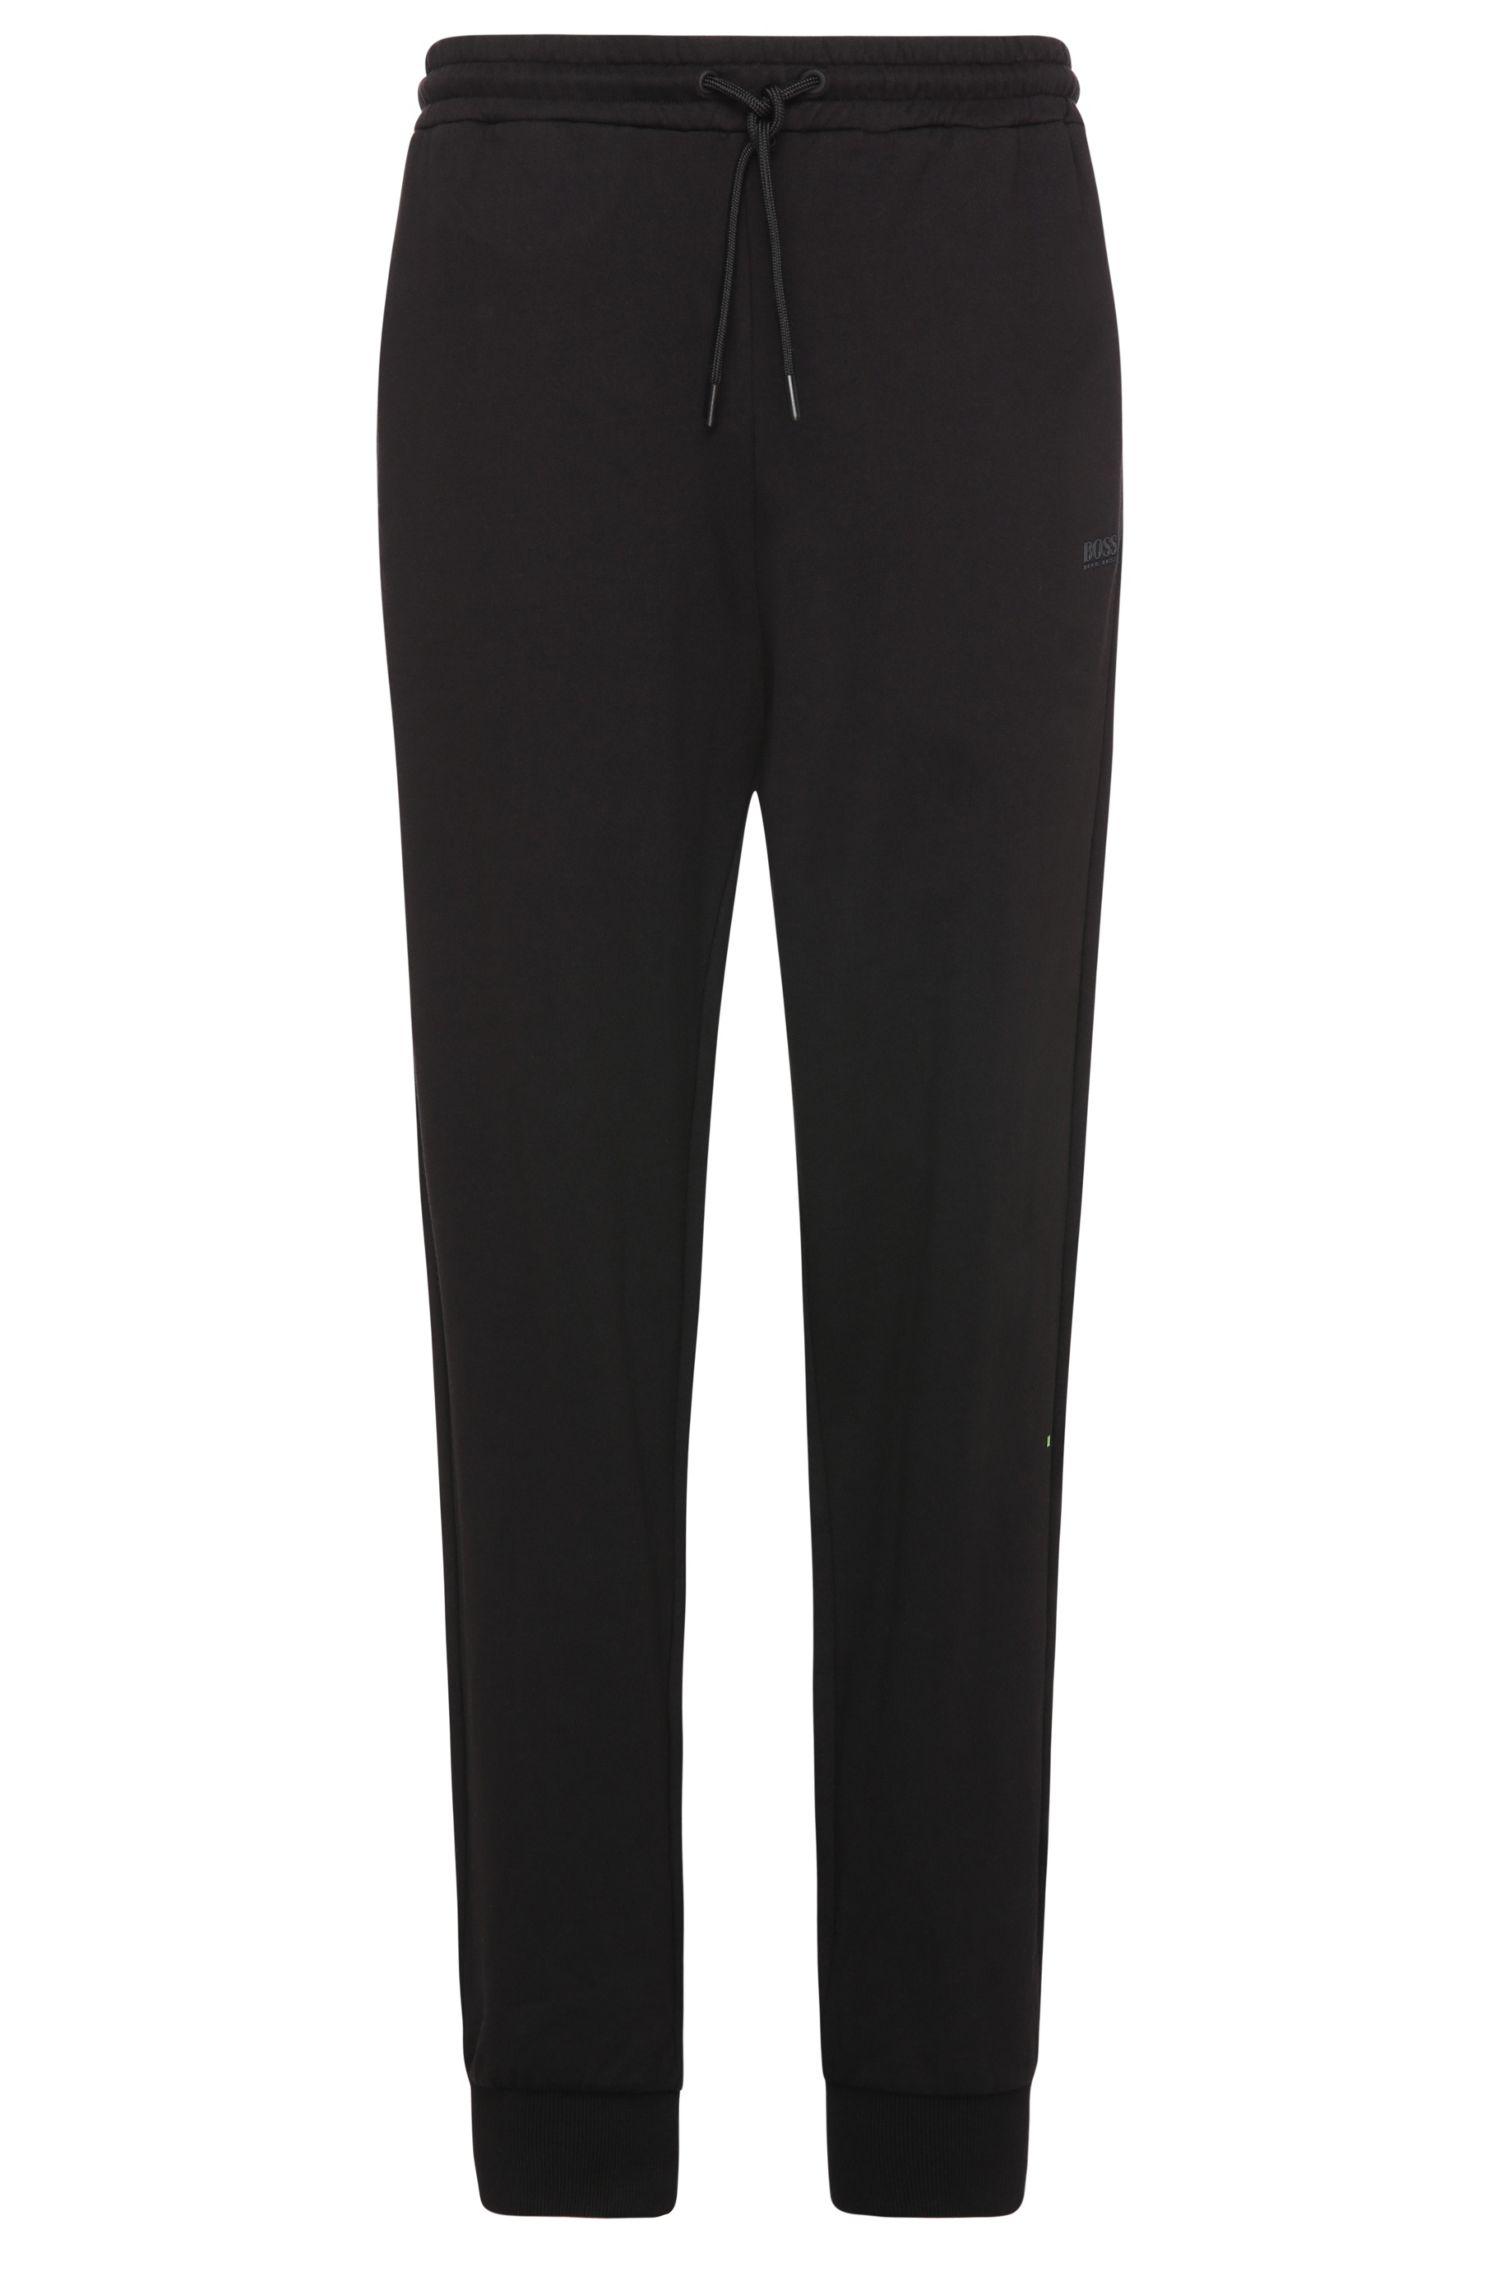 Pantalon en coton molletonné Relaxed Fit : « Hivon »